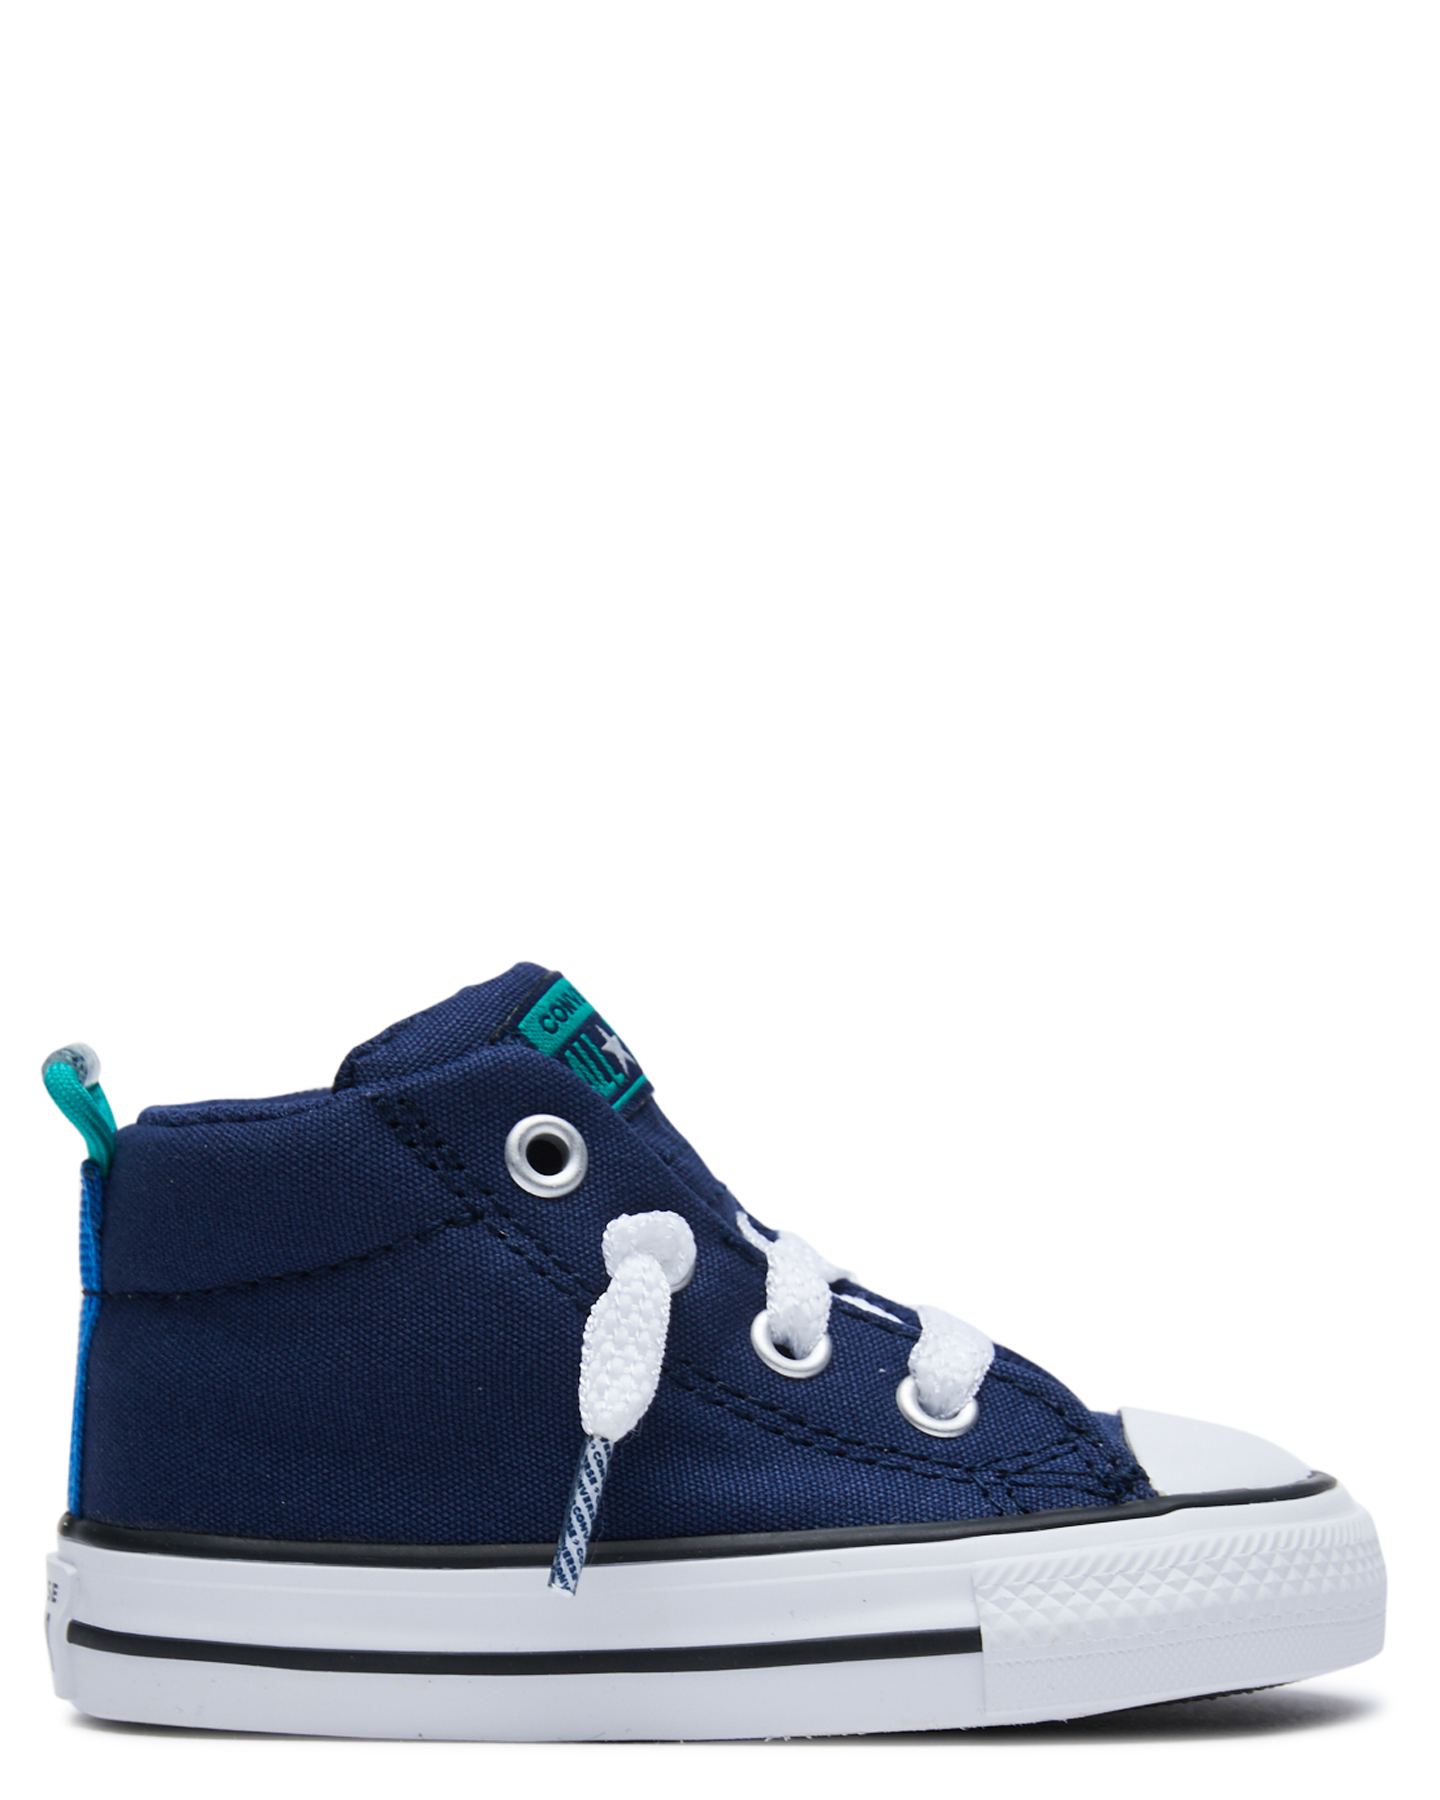 Converse Kids Chuck Taylor Street Shoe - Toddlers Midnight Navy Midnight Navy